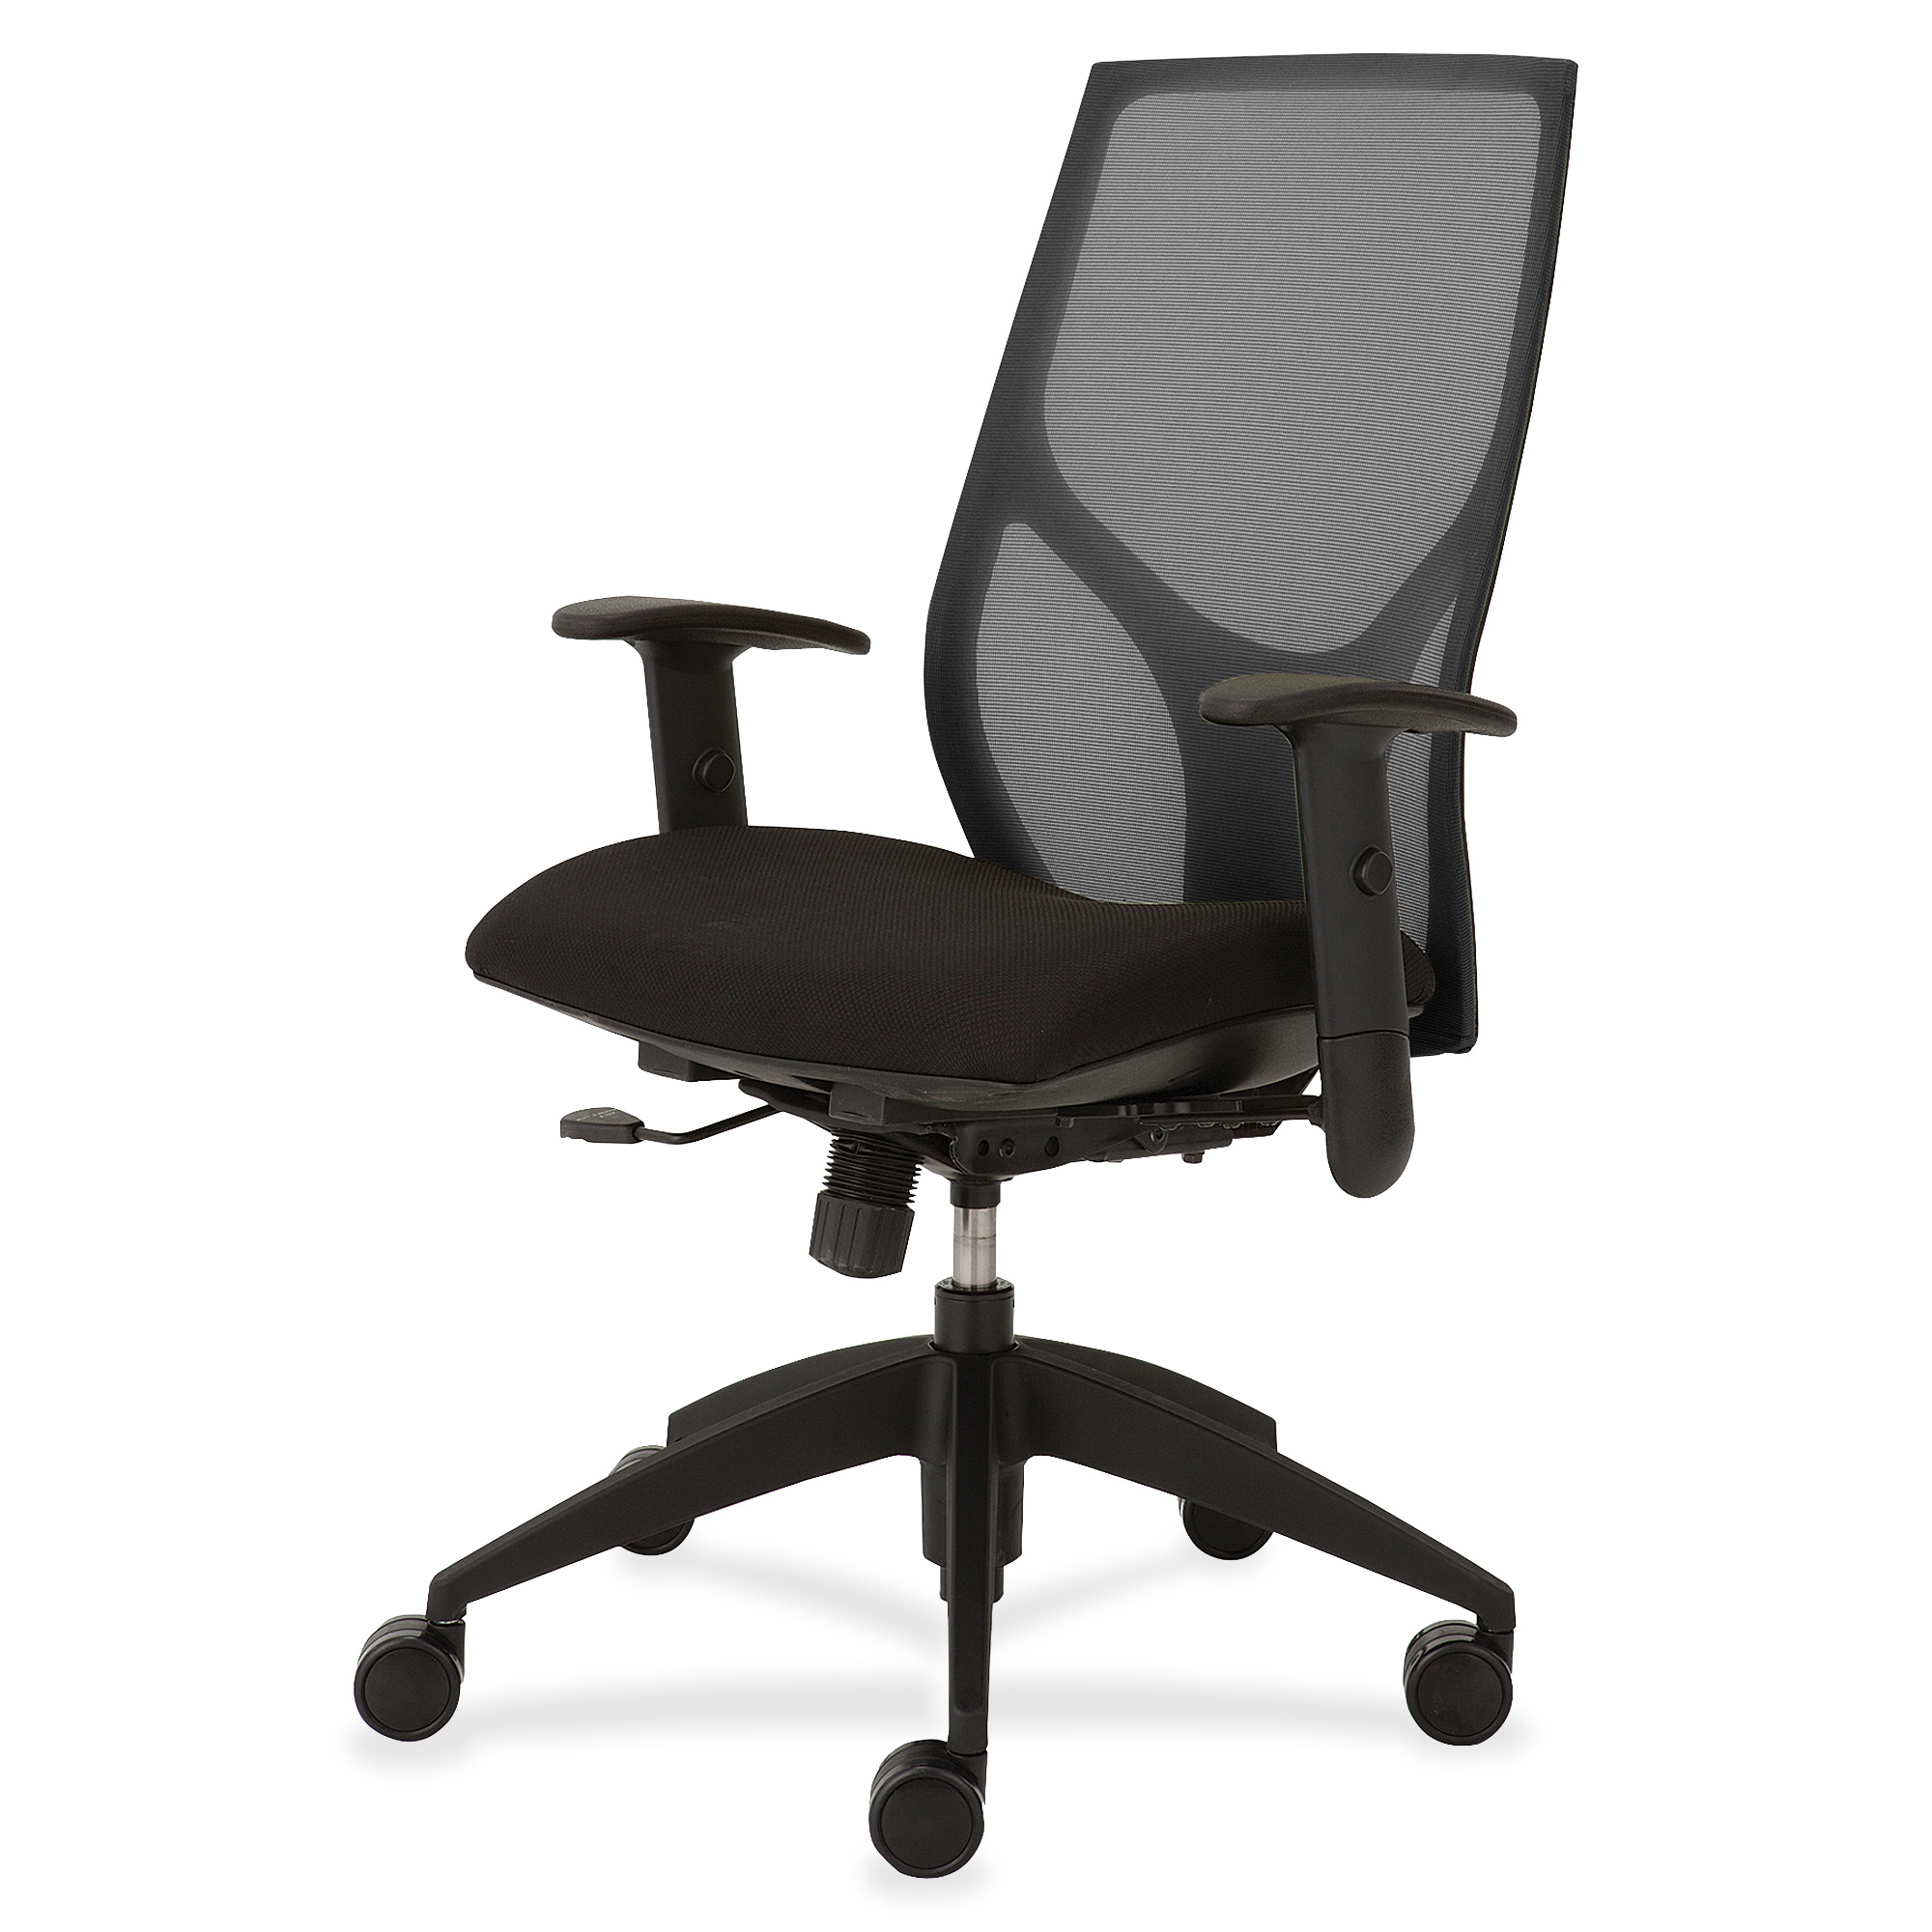 hon ignition 2 0 chair review gaming chairs xbox one top 10 task for your office nfl officeworks 9to5 vault